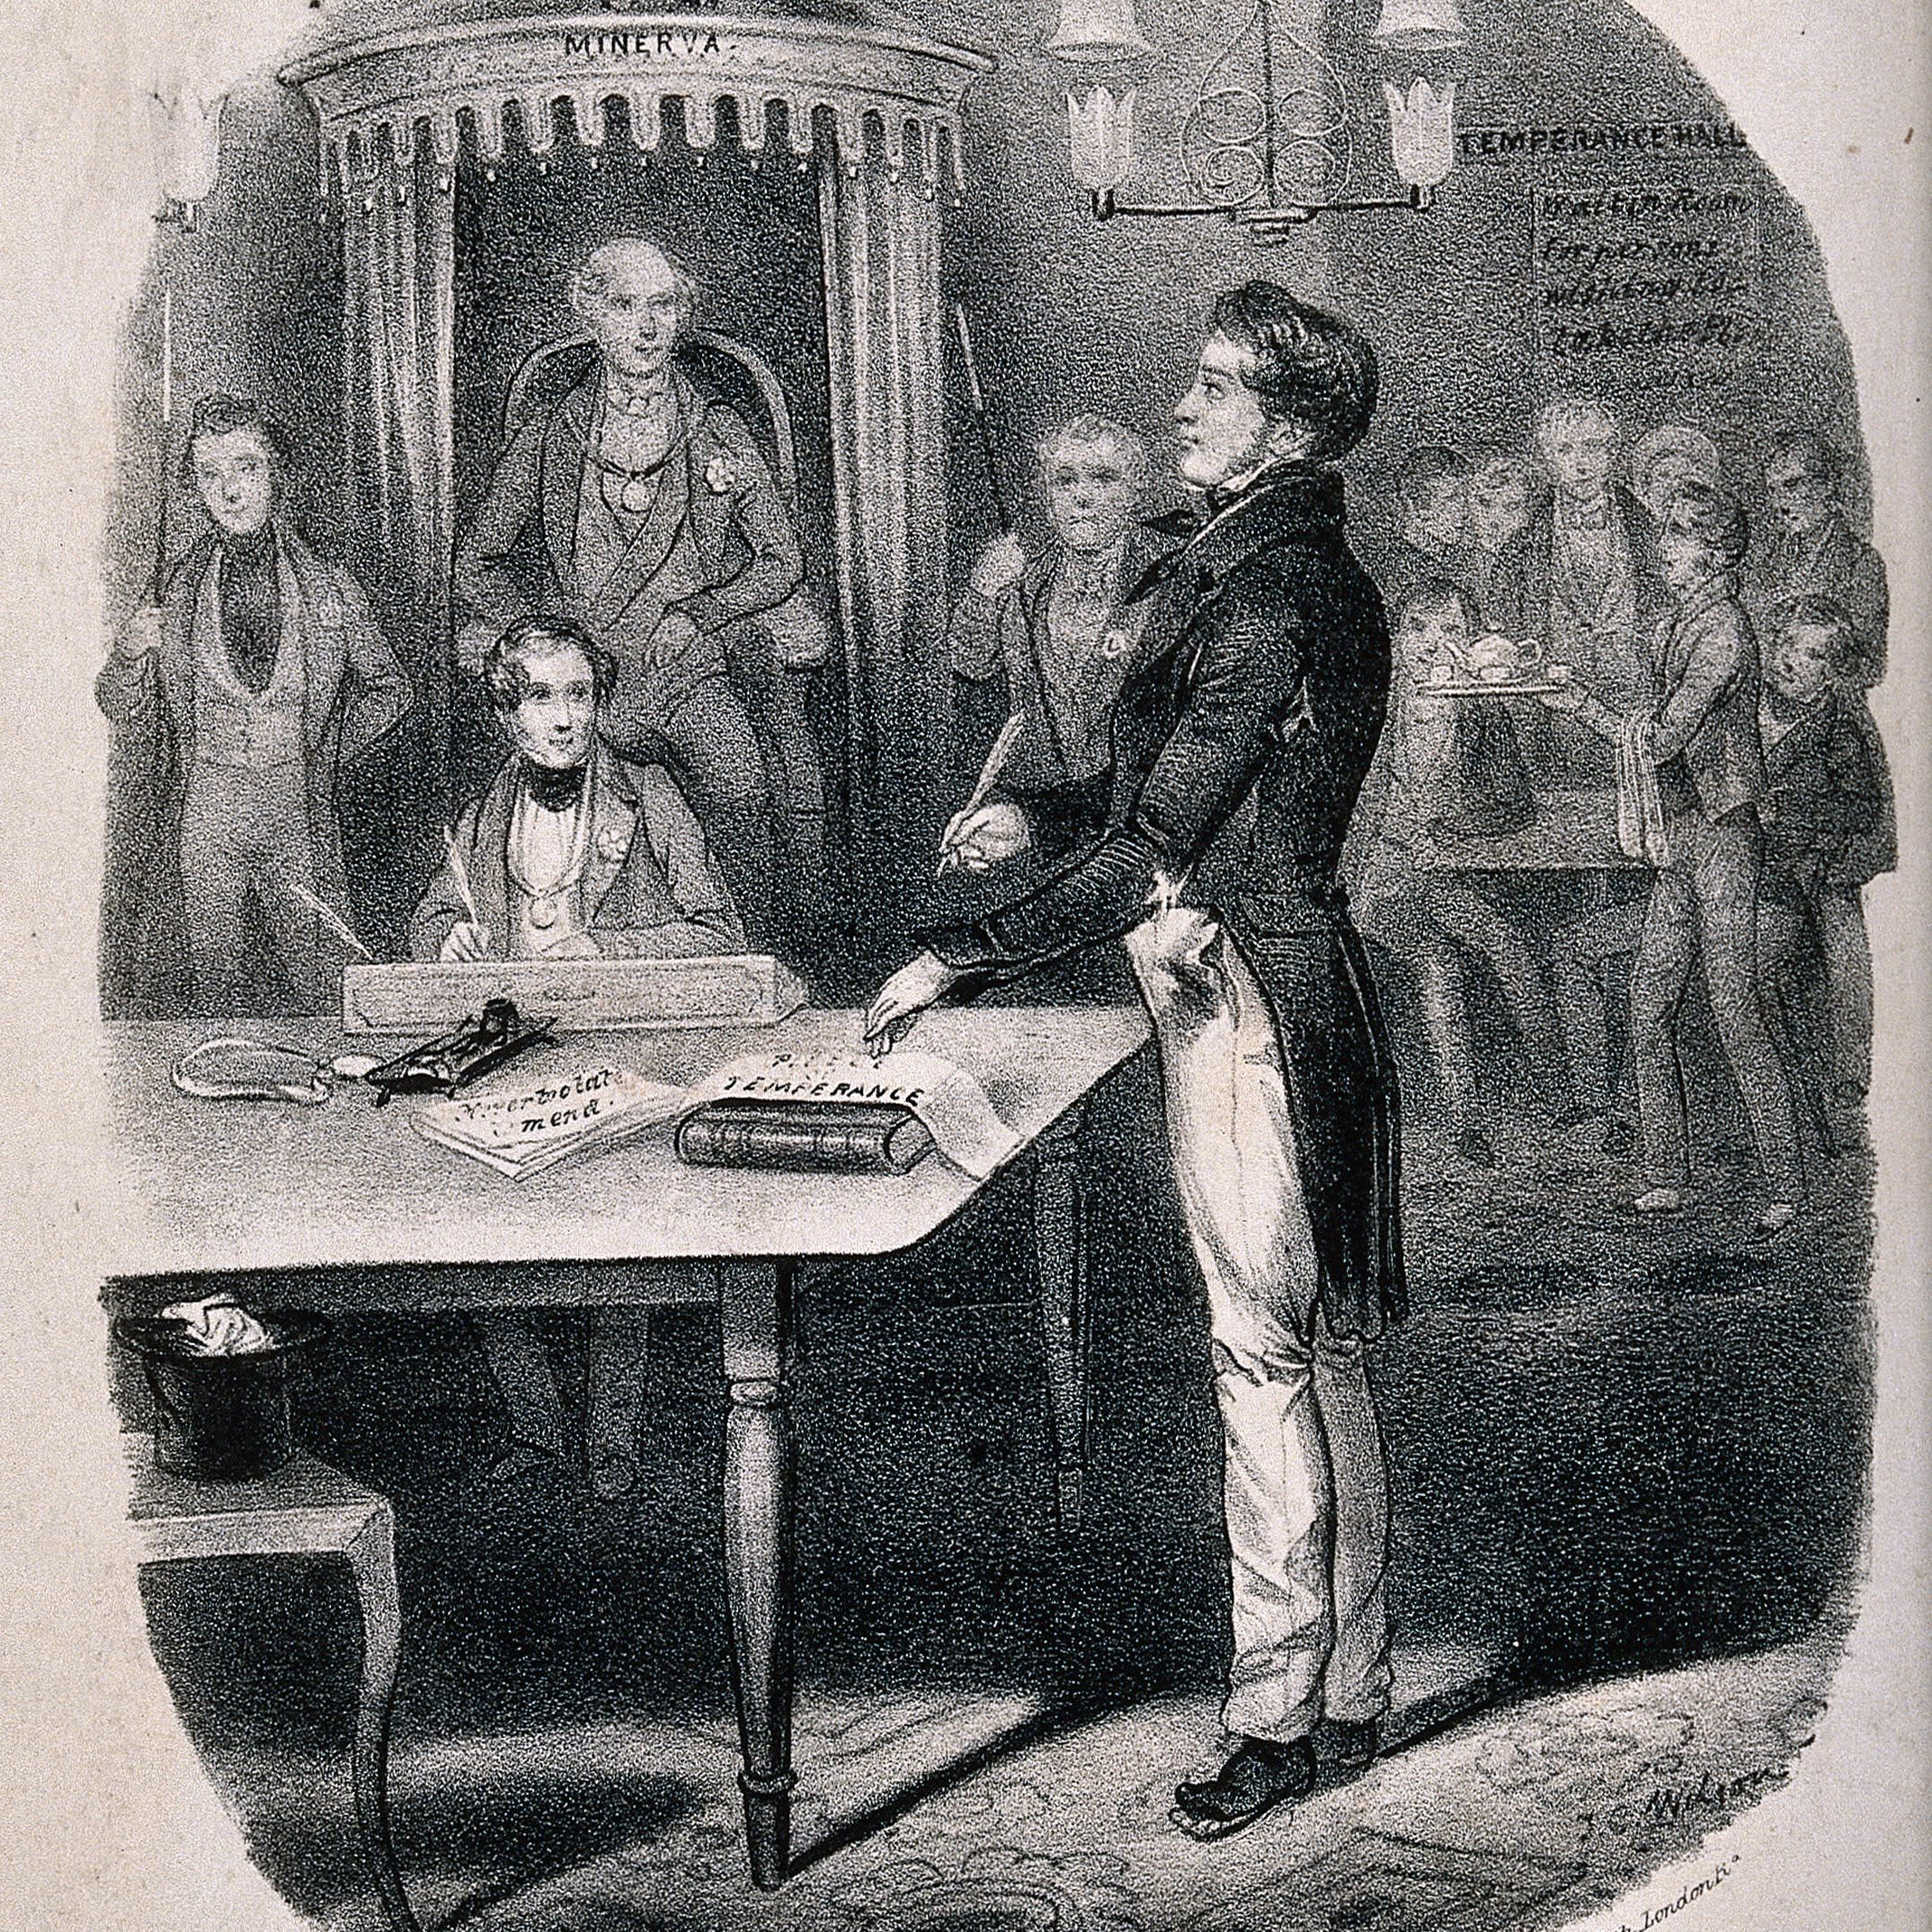 This image shows a man standing in a law court vowing to reform to temperance.